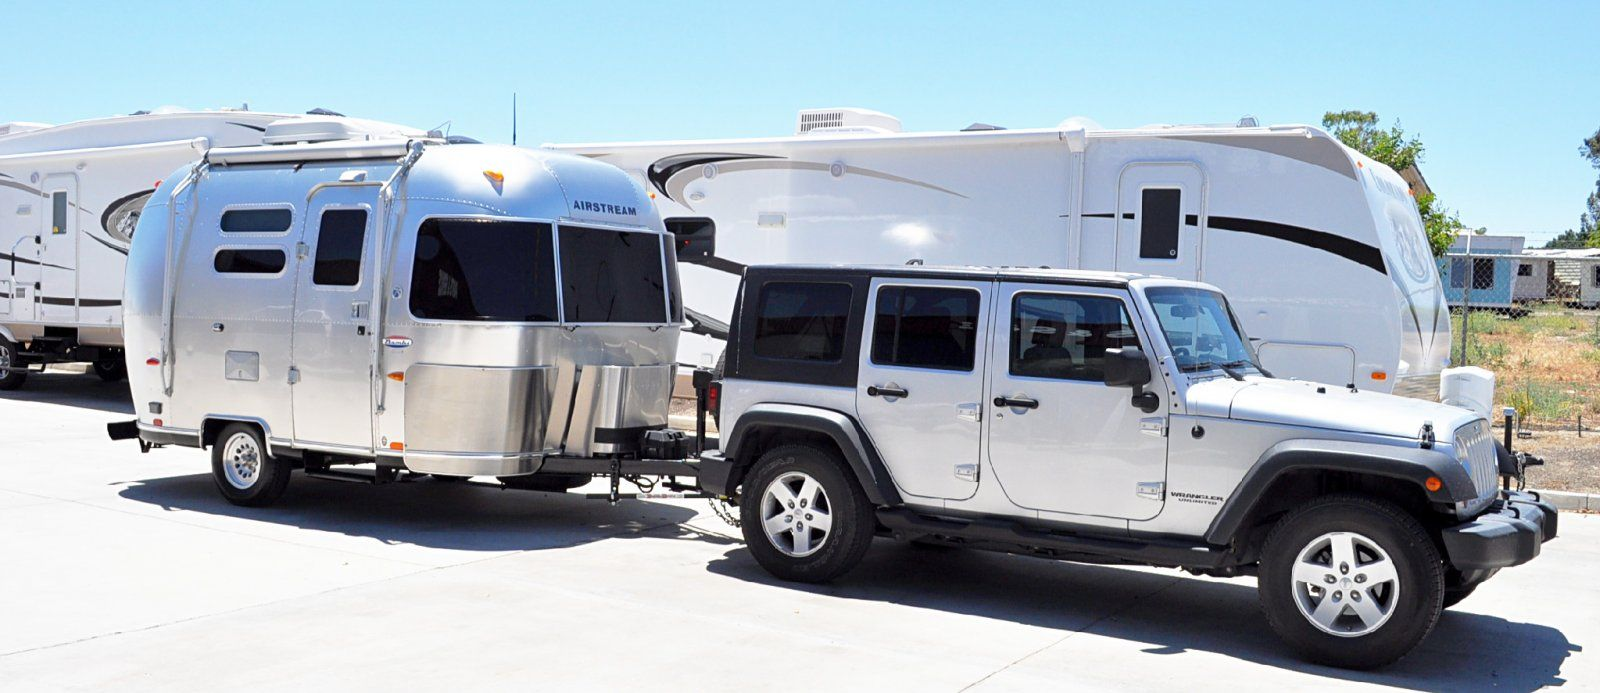 attachment.php (1600×693) Jeep, Jeep wrangler, Camping